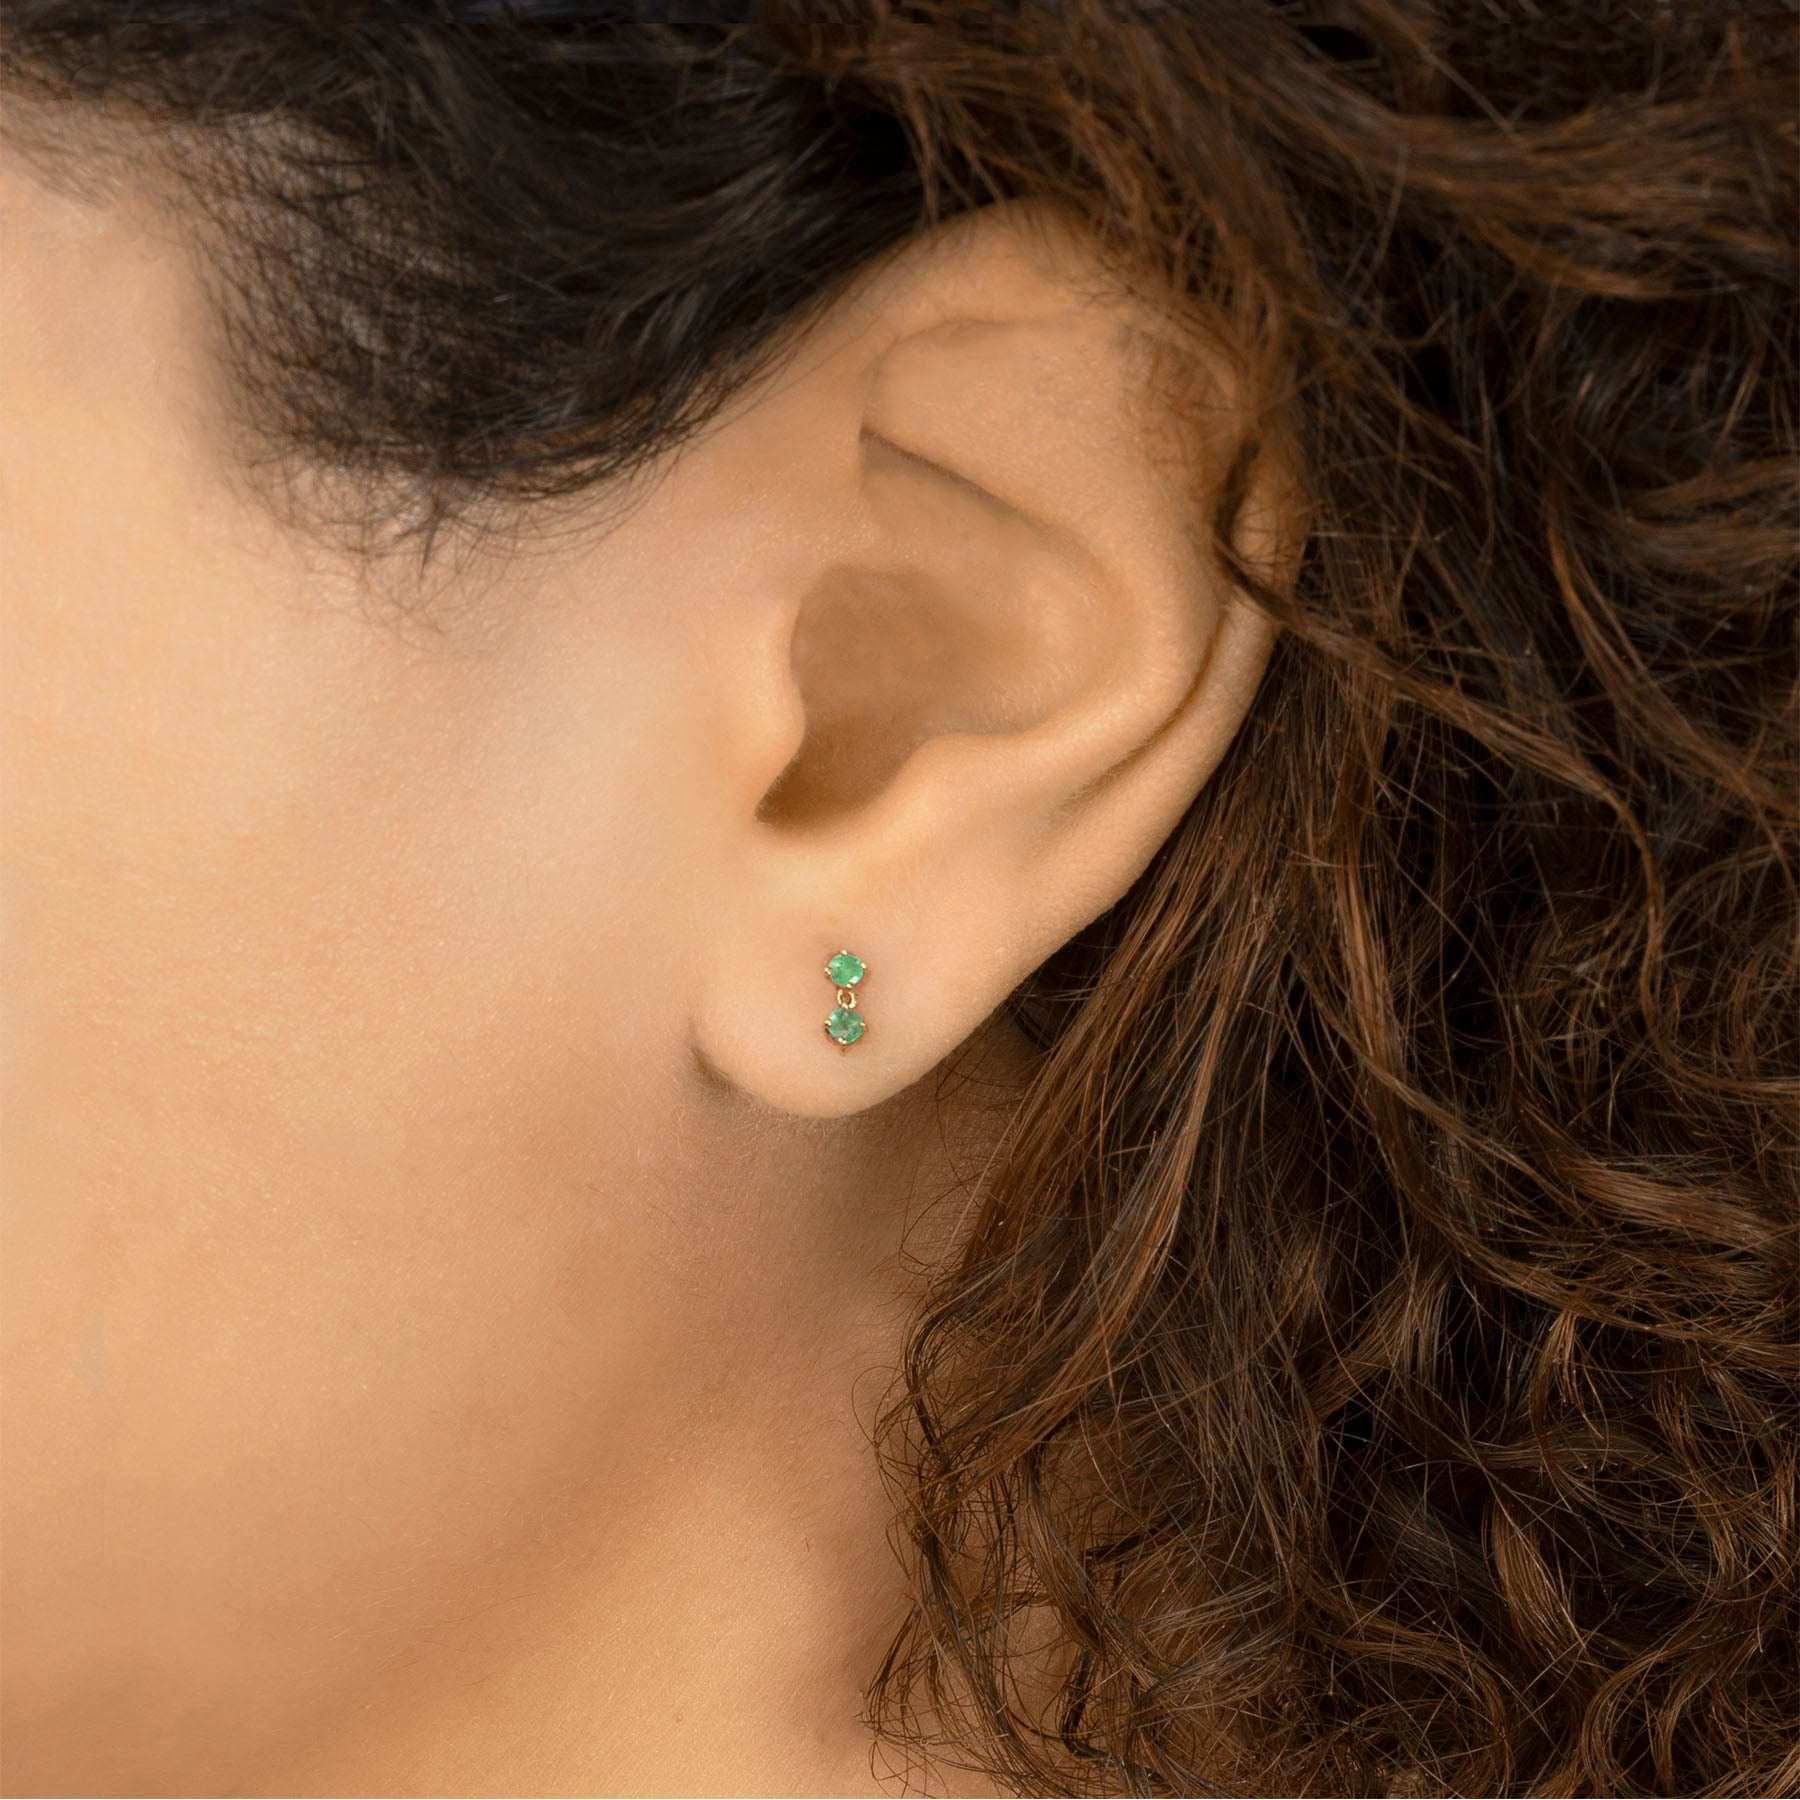 EMERALD DOUBLE DROPLET PIERCING STUD